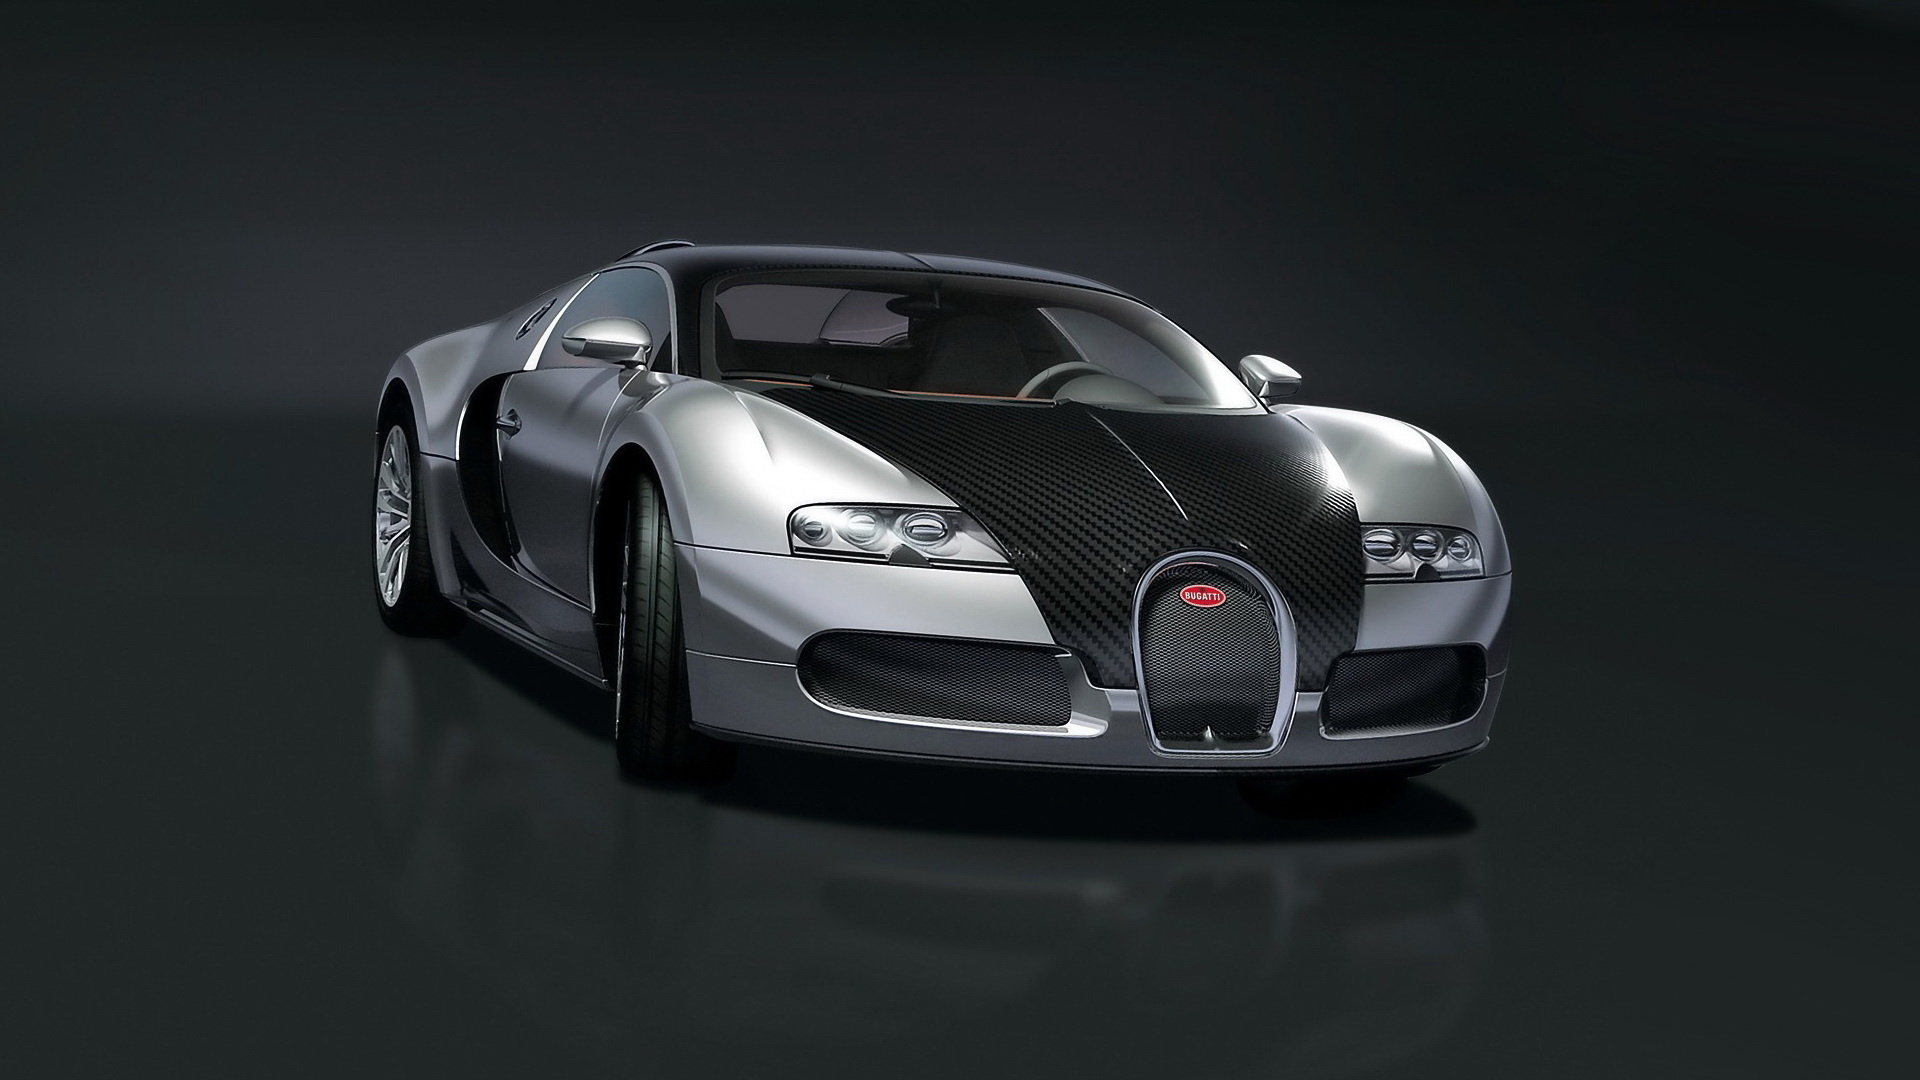 bugatti veyron wallpaper cars 2015 616 wallpaper walldiskpaper. Black Bedroom Furniture Sets. Home Design Ideas